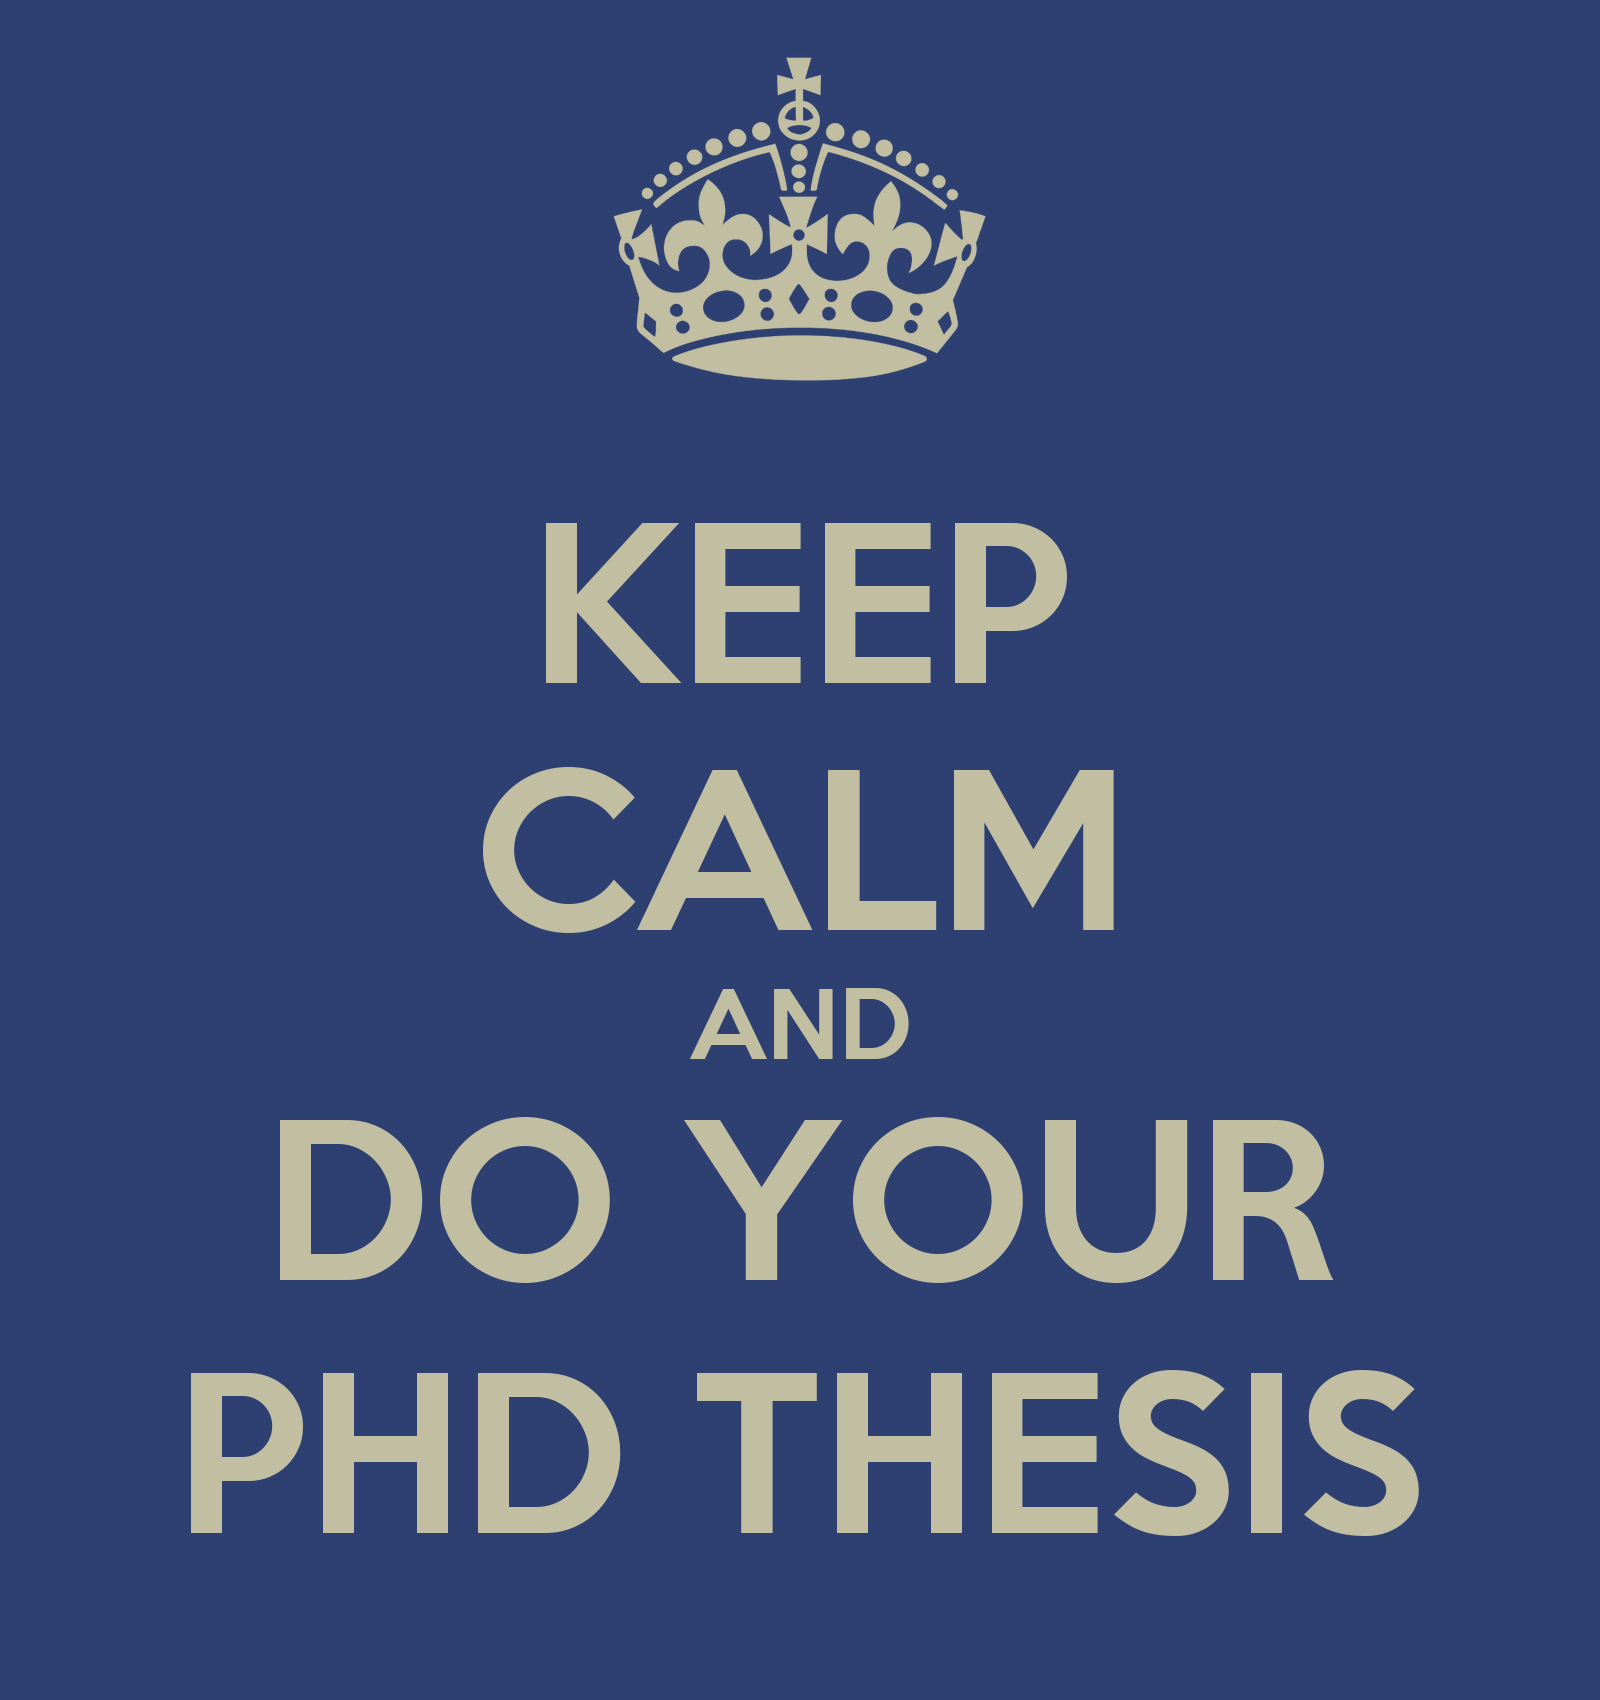 In many fields, the highest degree you can have is a doctorate degree.